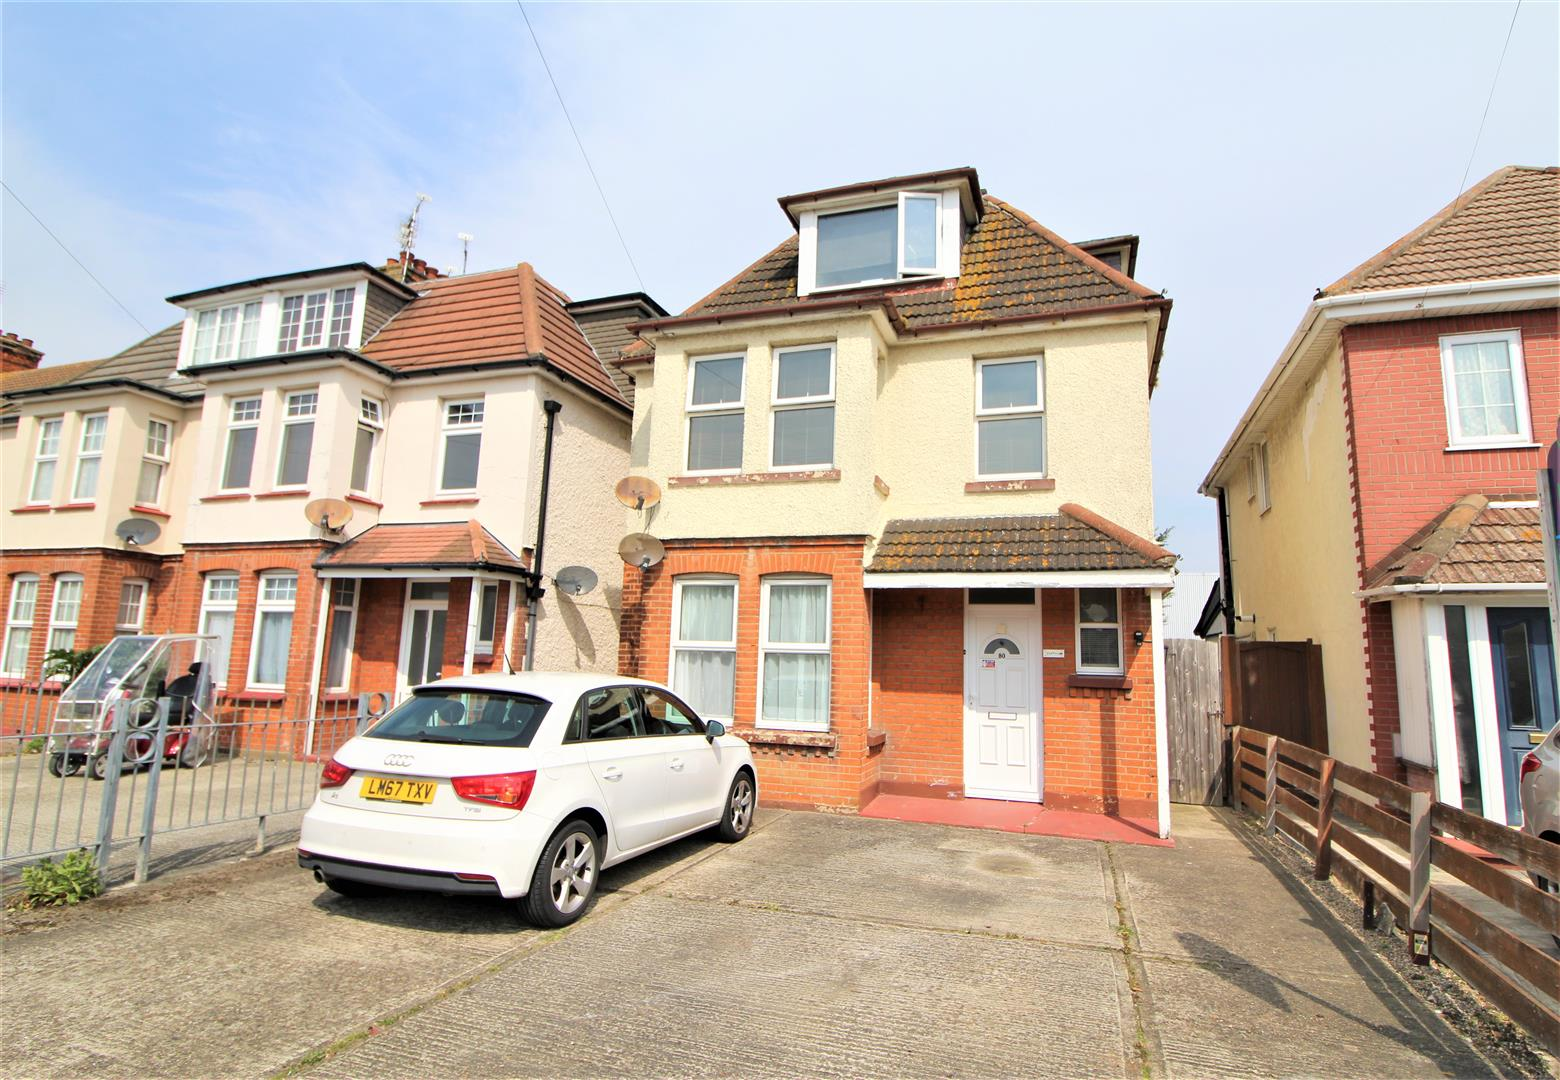 West Avenue, Clacton-On-Sea, Essex, CO15 1HD